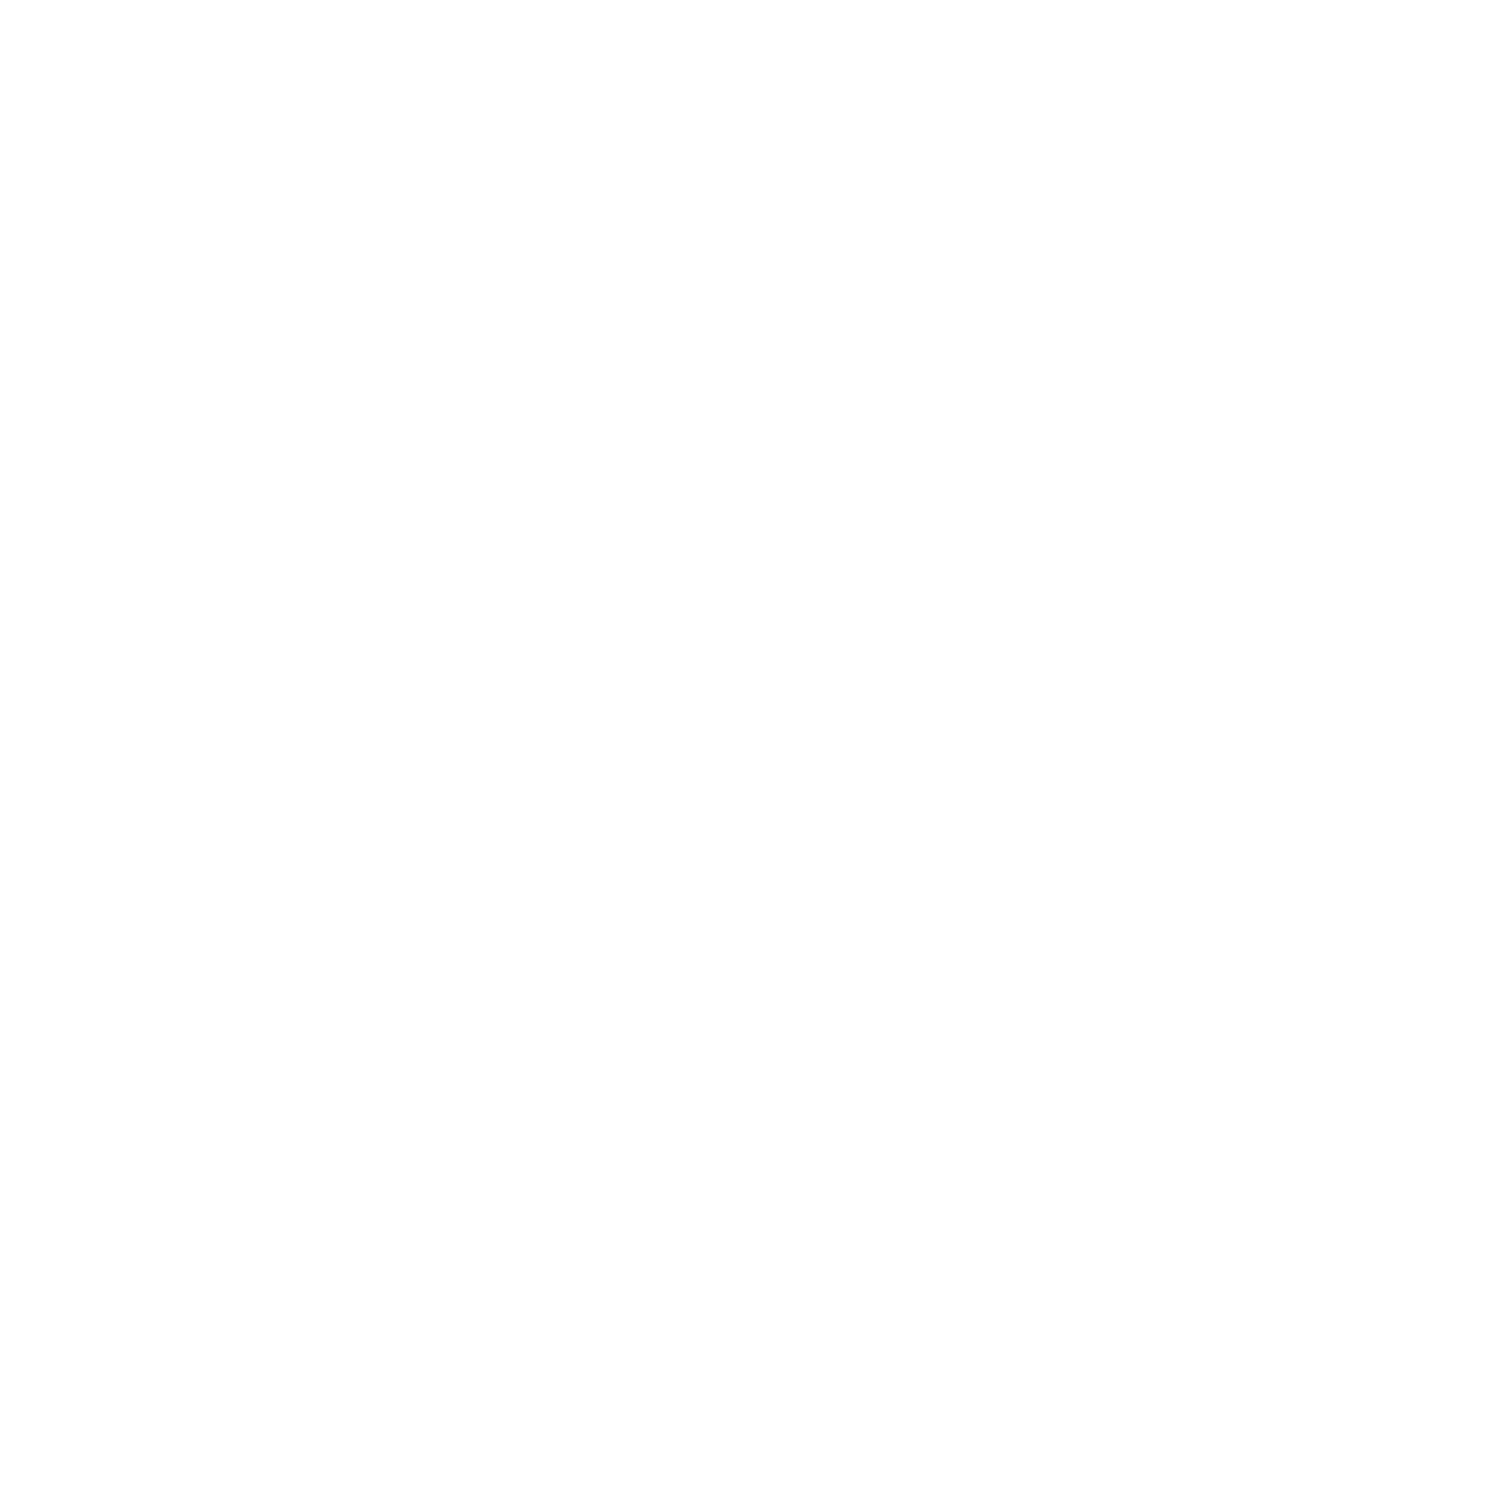 Tampa Bay Friendship Trail